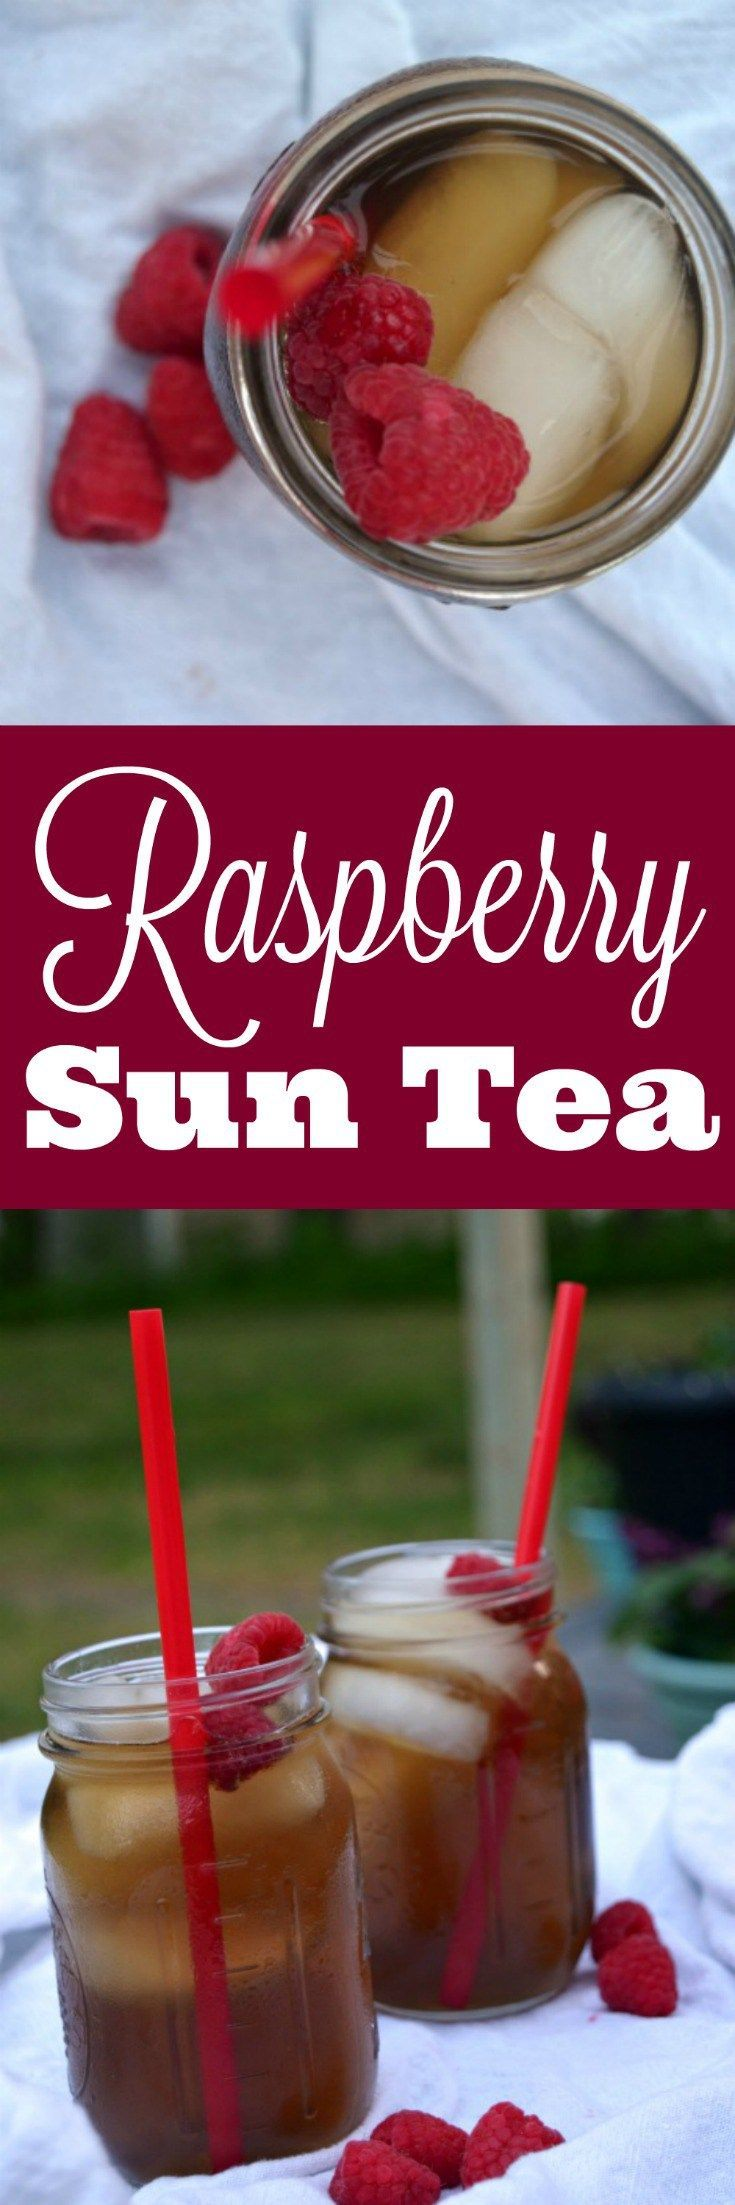 100 sun tea recipes on pinterest strawberry tea fruit for Easy fruit tea recipe